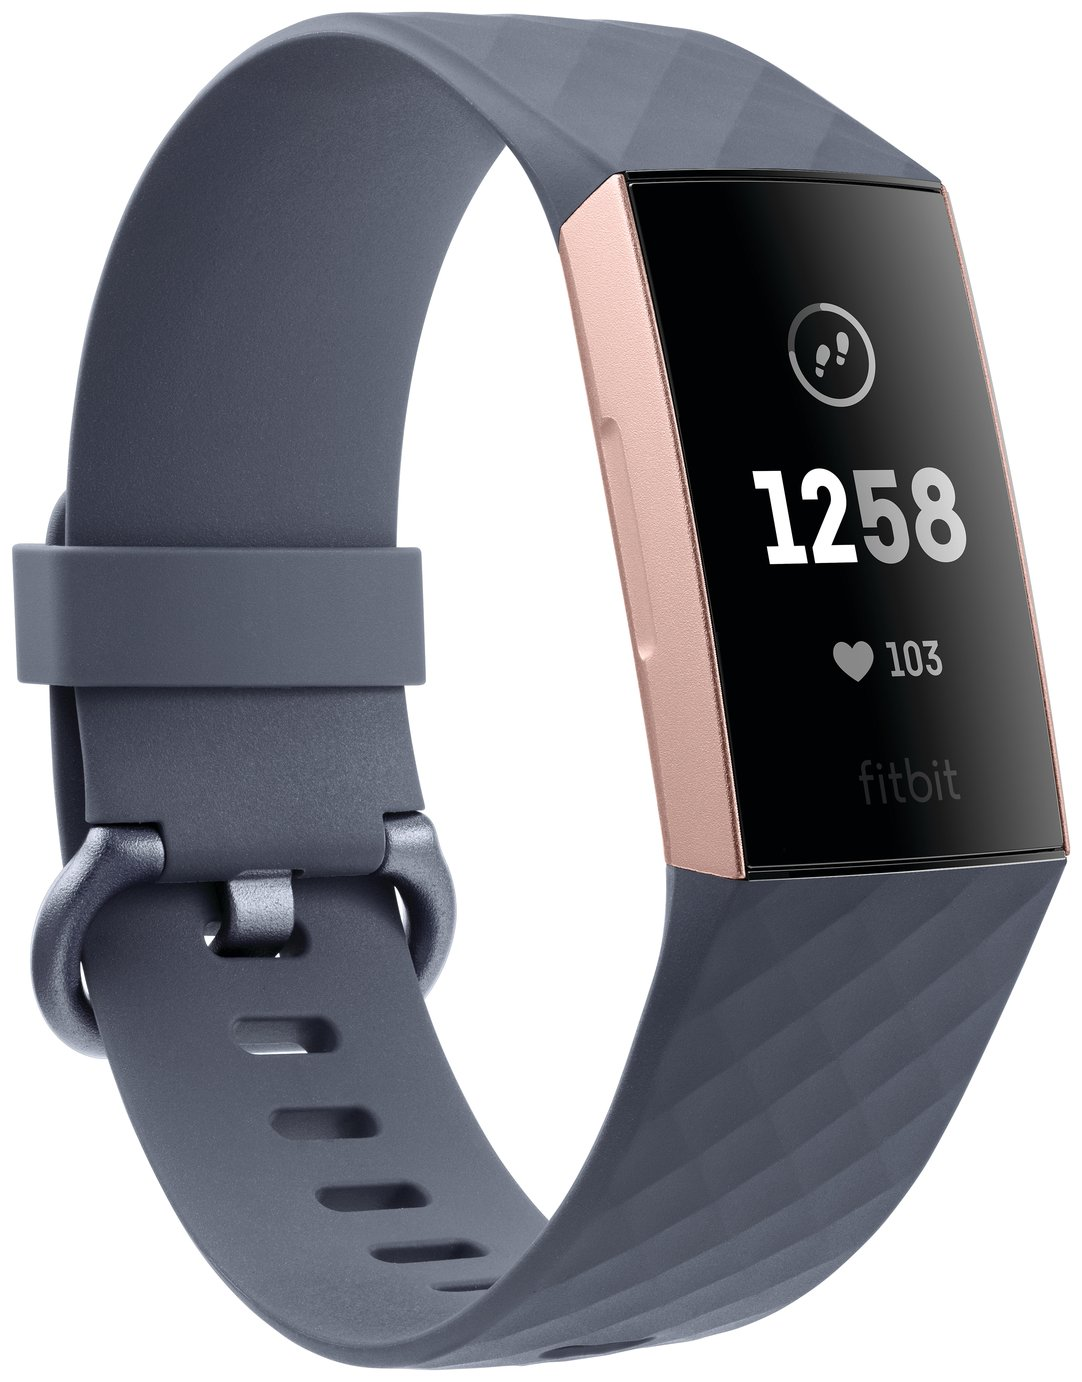 All Fitbit Discounts, Offers and Sale - October 12222